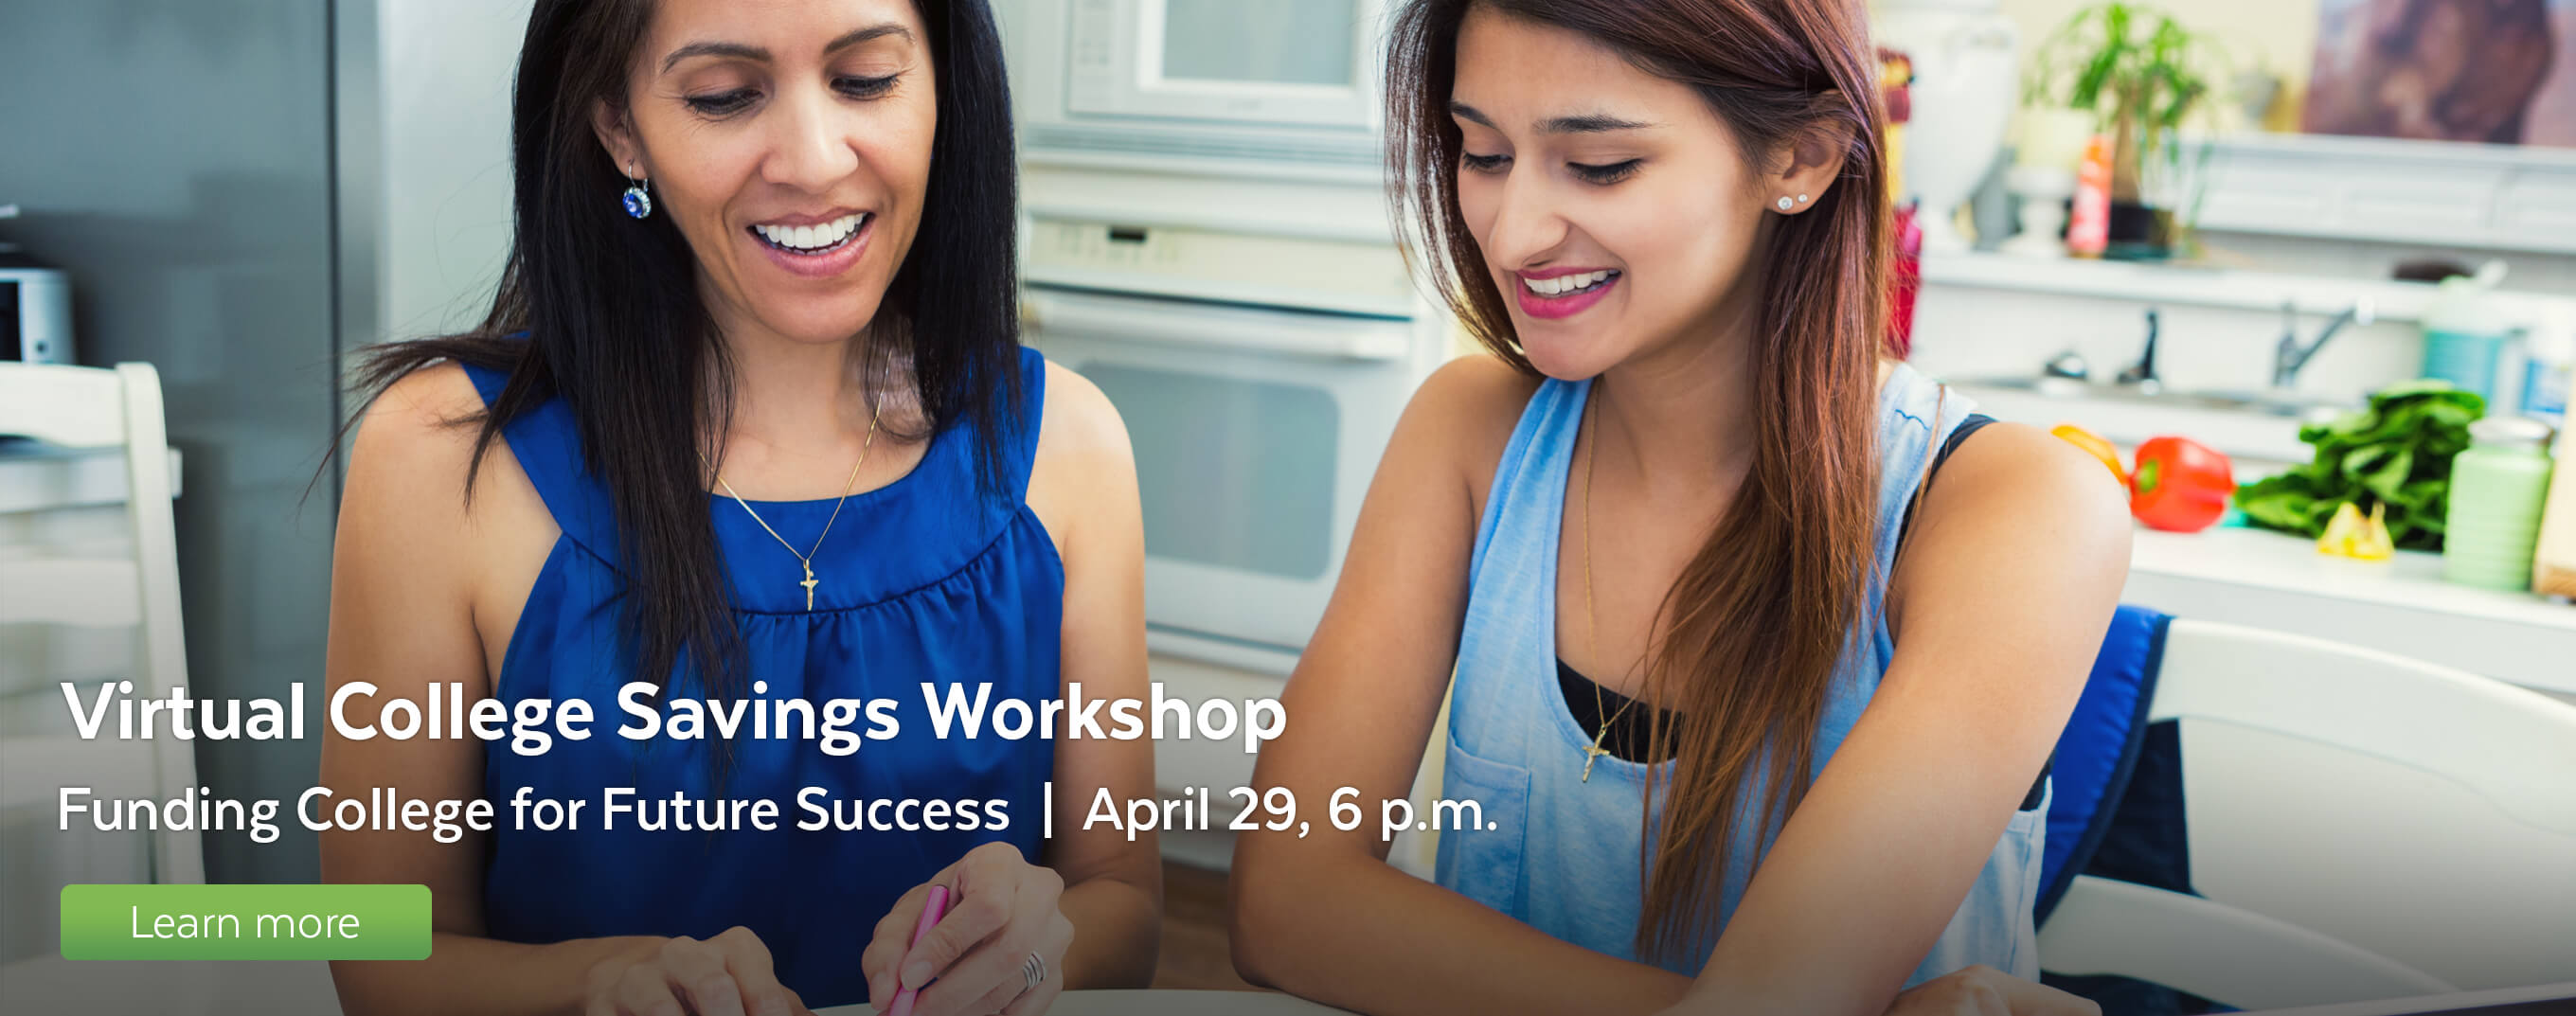 Attend the Virtual College Savings workshop on April 29 at 6:00 p.m.